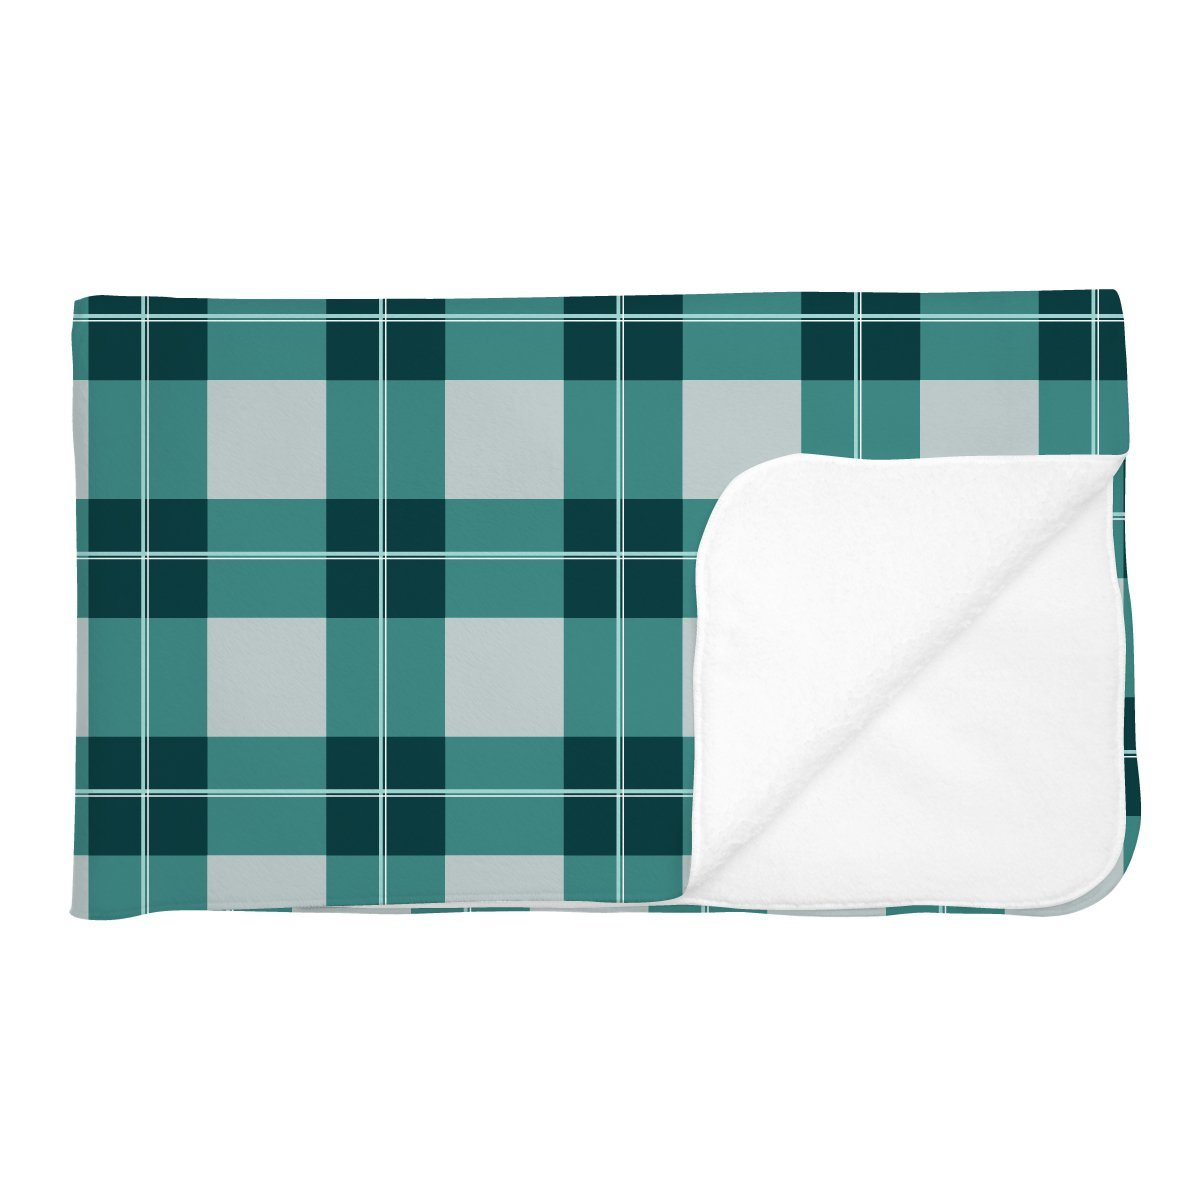 Aiden's Plaid | Adult Size Blanket